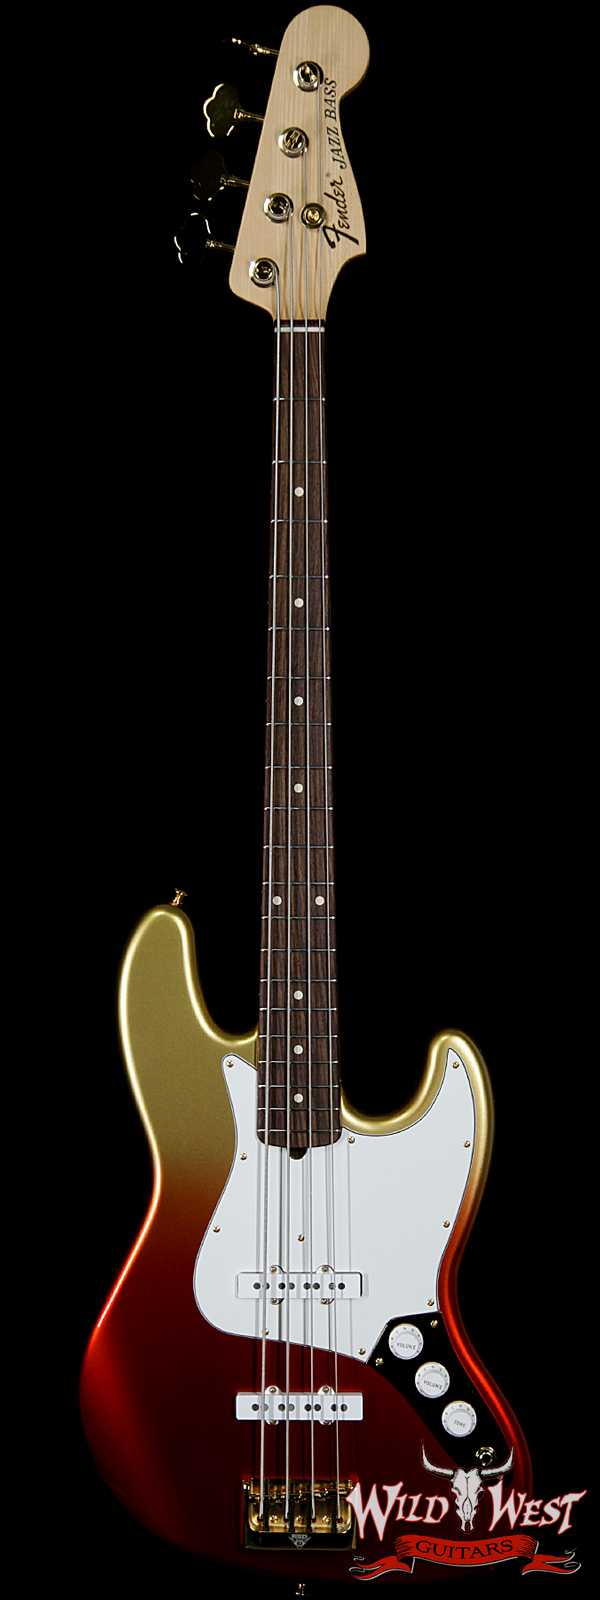 2020 NAMM Fender Custom Shop Jason Smith Masterbuilt 70s Jazz Bass NOS Indian Rosewood Board Red to Gold Stratoburst